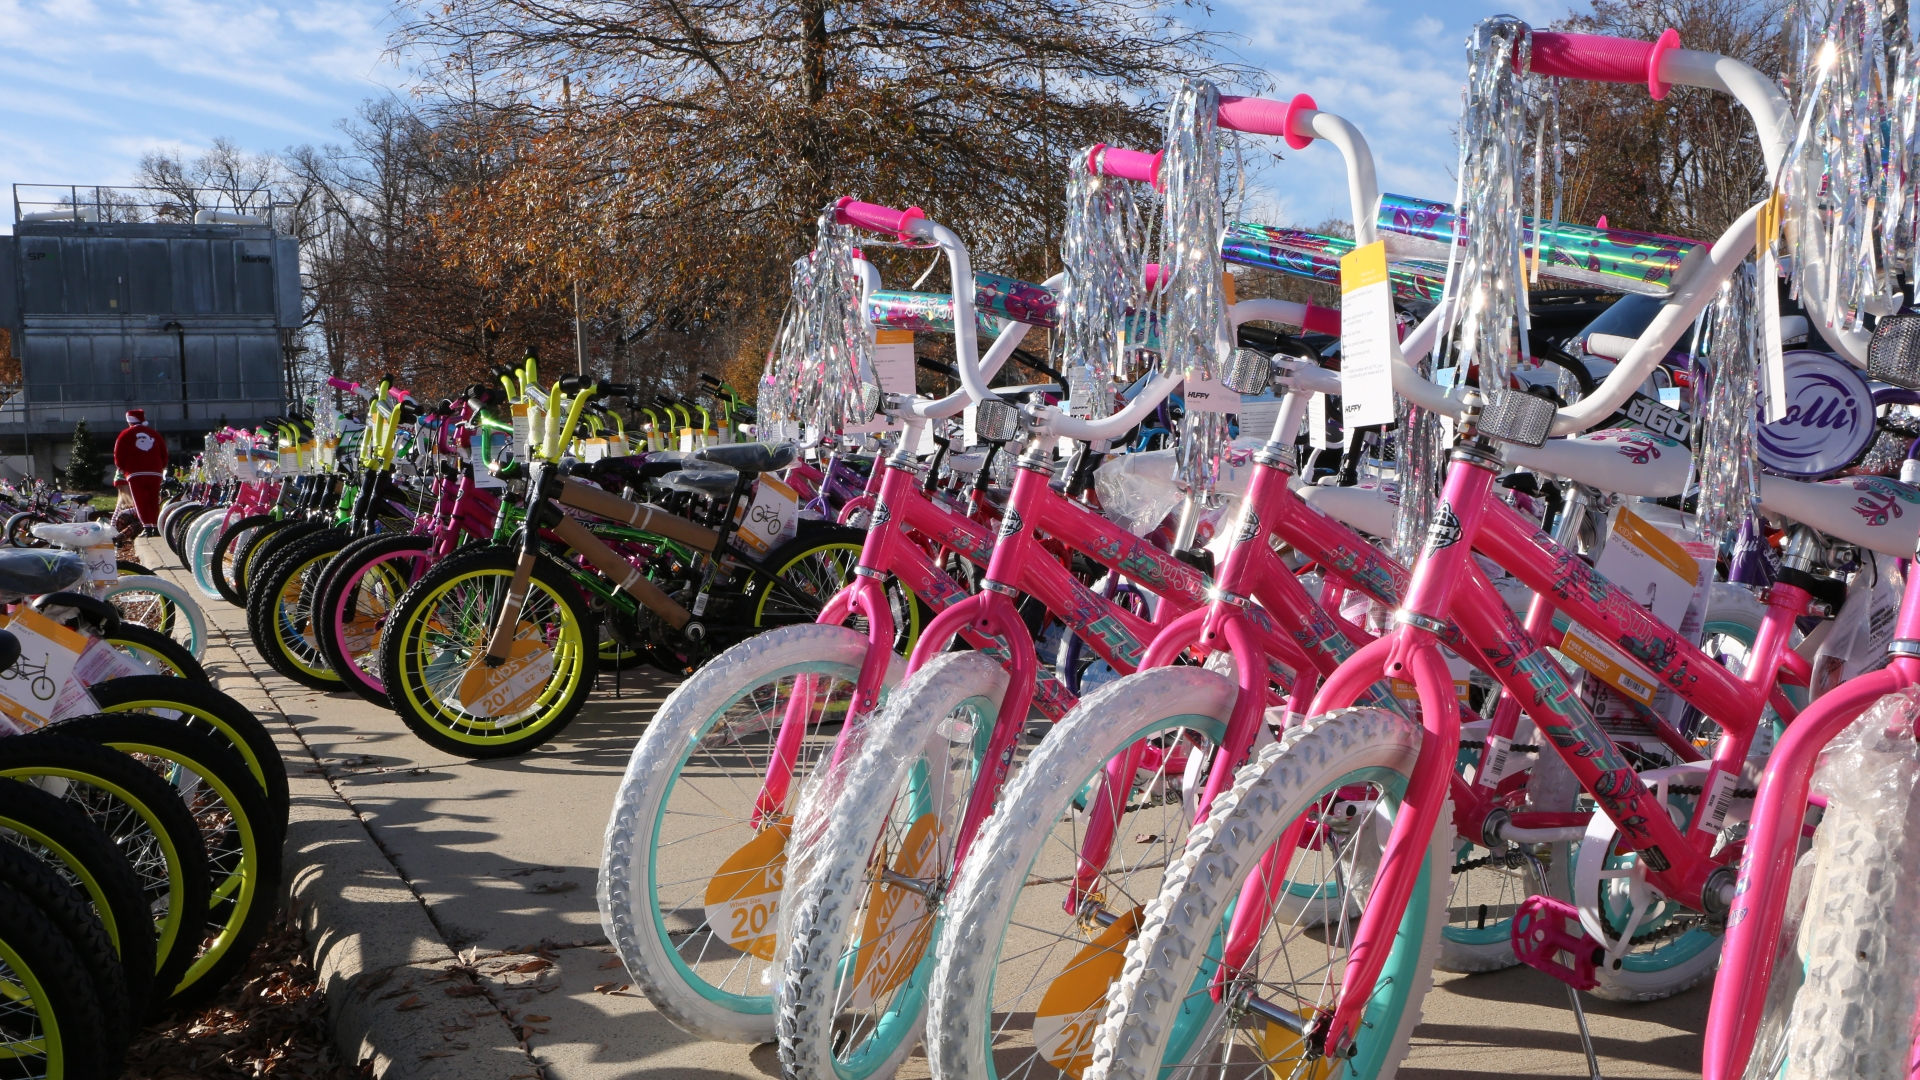 Each year, teammates at Atrium Health Union pull together to help less fortunate kids in Union County by donating bikes to the Union County Christmas Bureau. What began with around 50 bikes several years ago has grown into an outpouring of generosity that netted more than 500 bikes this year.